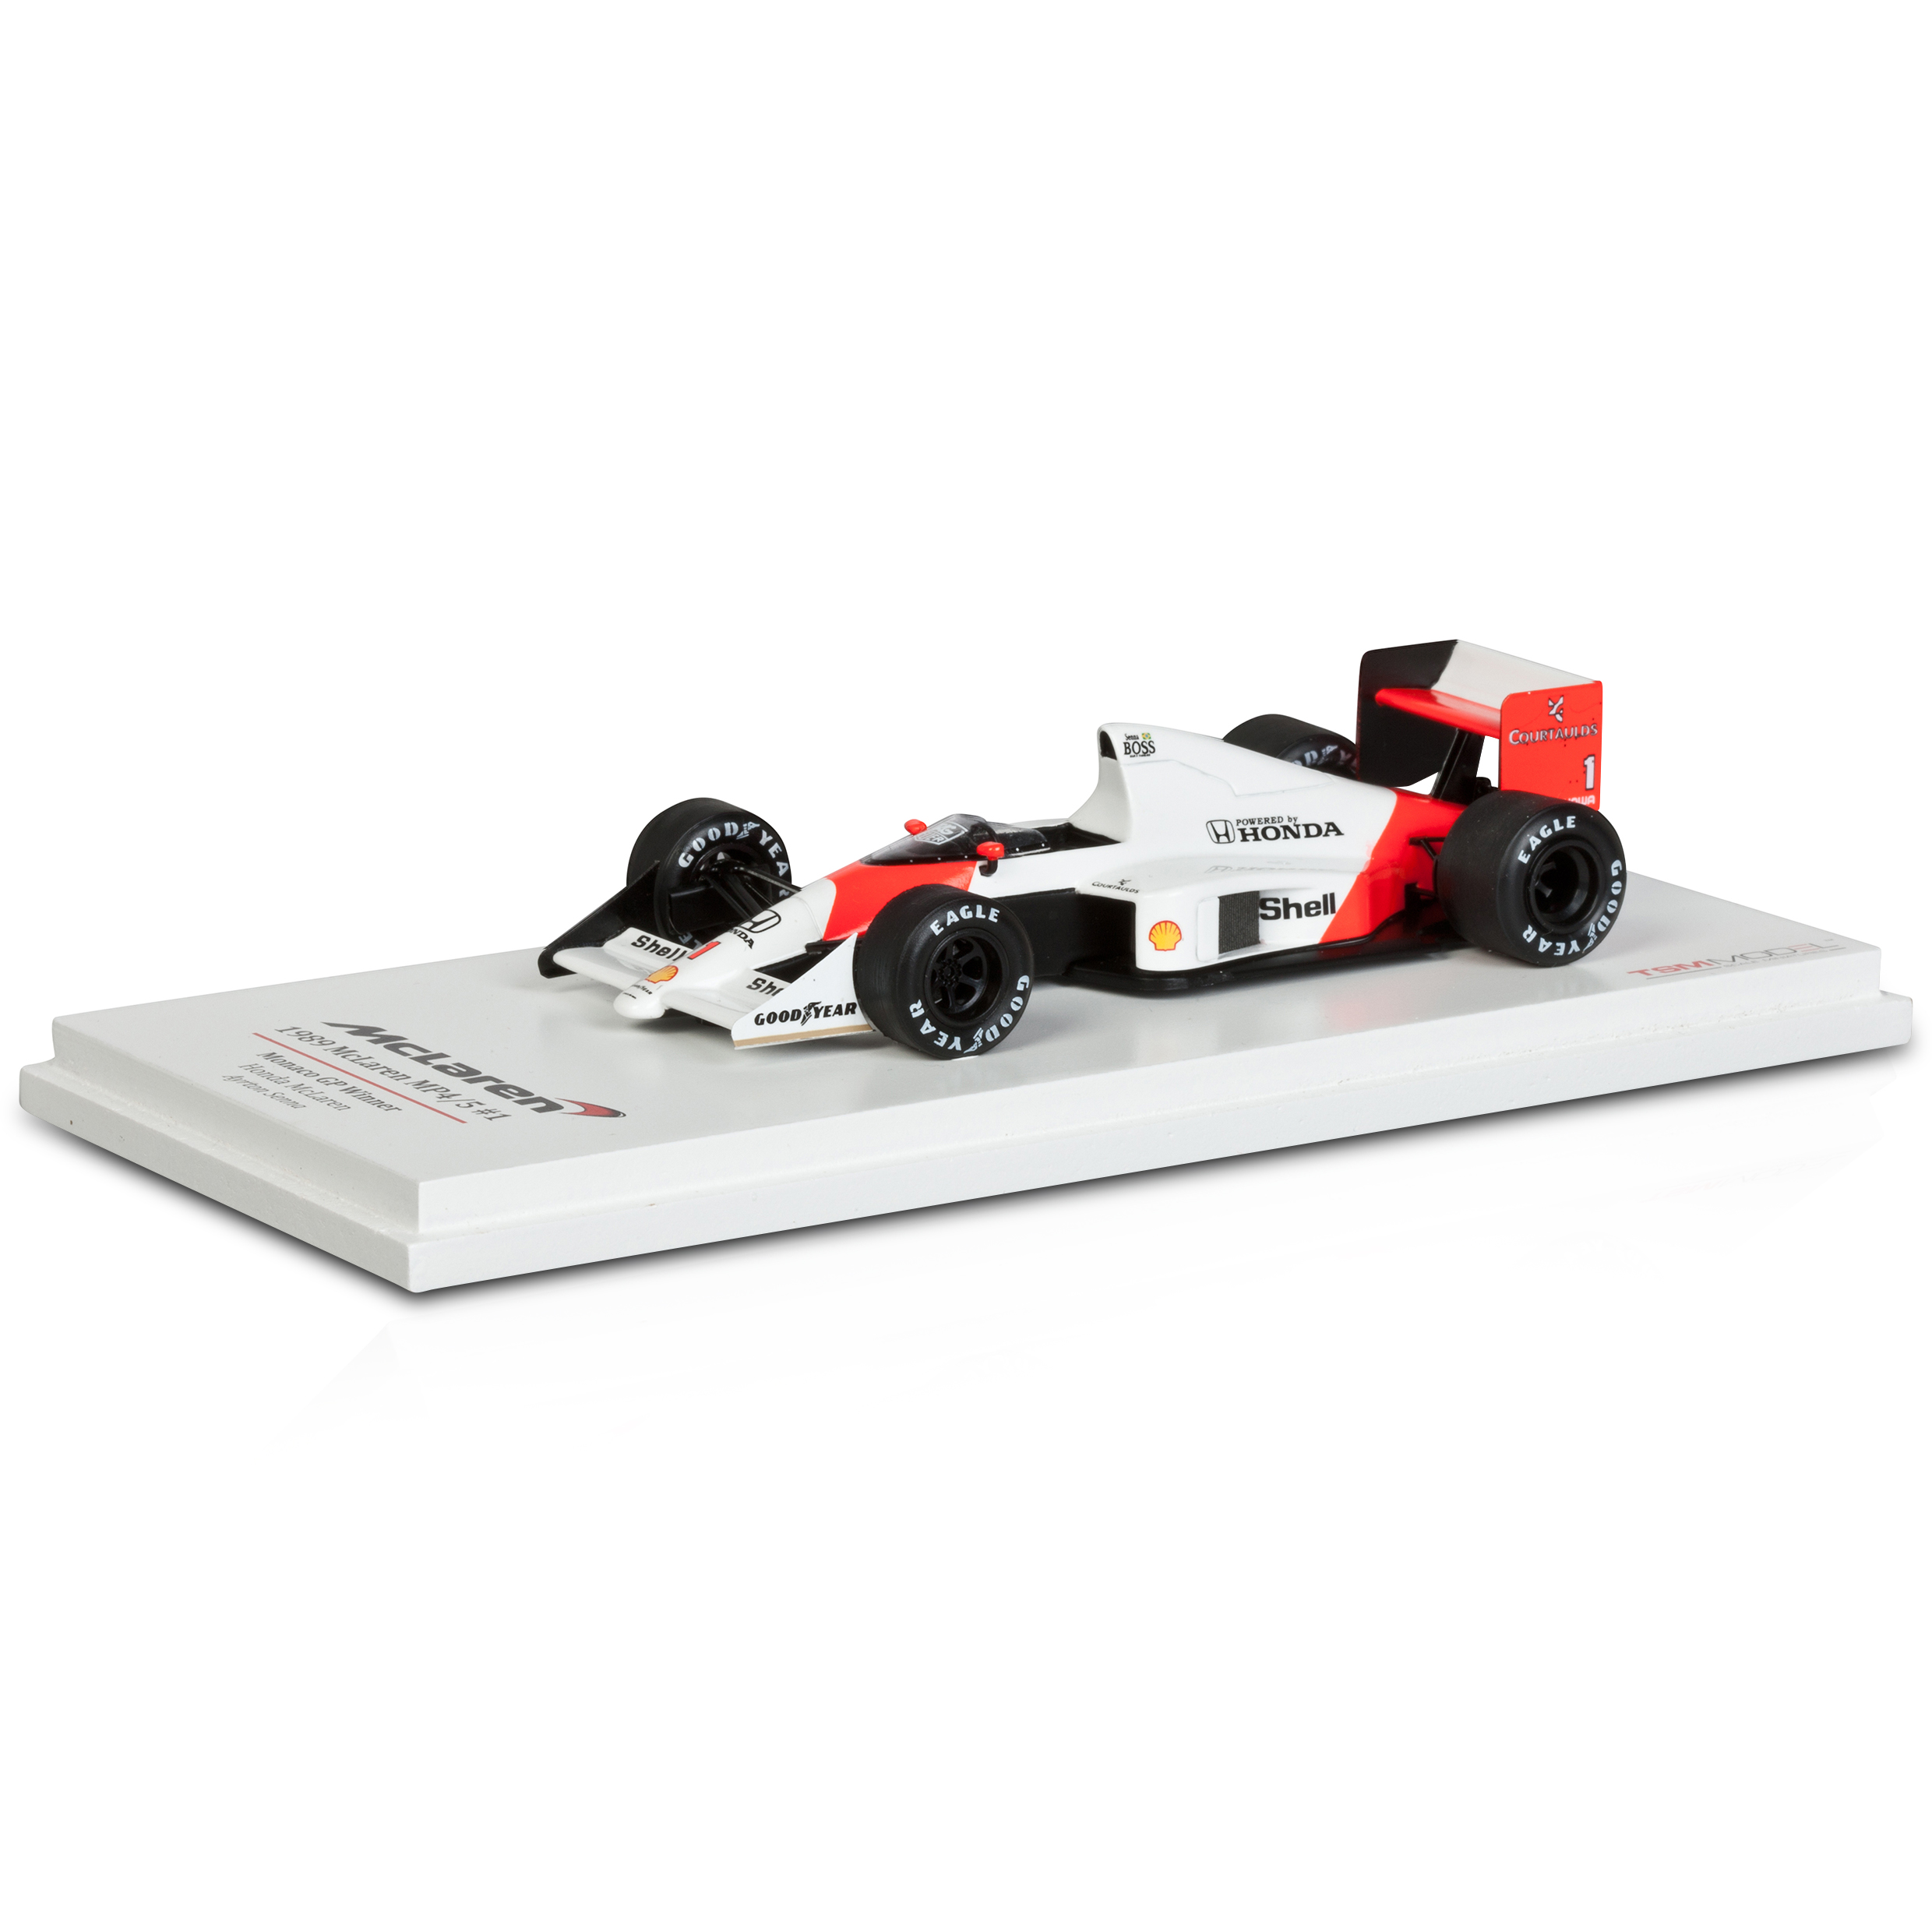 Team McLaren MP4/5 1989 Monaco GP 1st Place No.1 - A. Senna 1:43 Scale